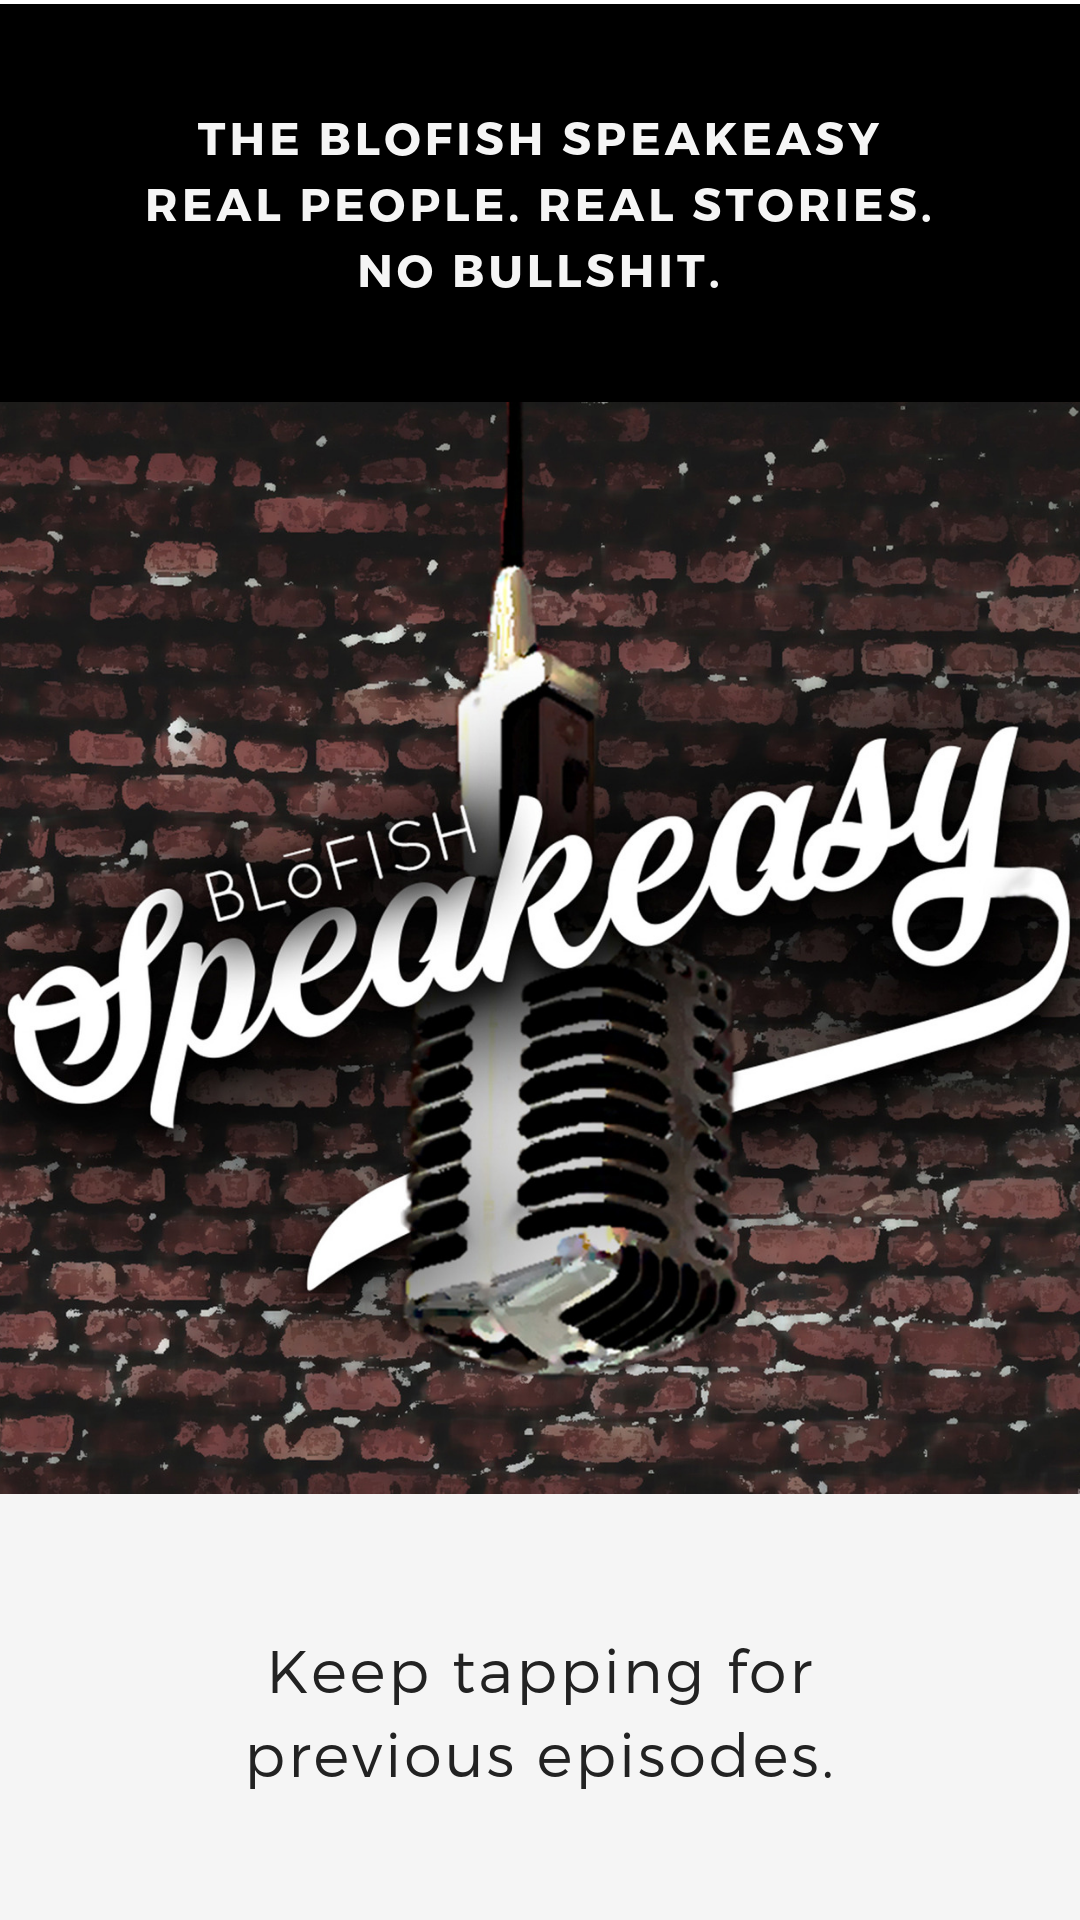 An Instagram story post created for BLoFISH Clothing highlighting their podcast, the BLoFISH Speakeasy.